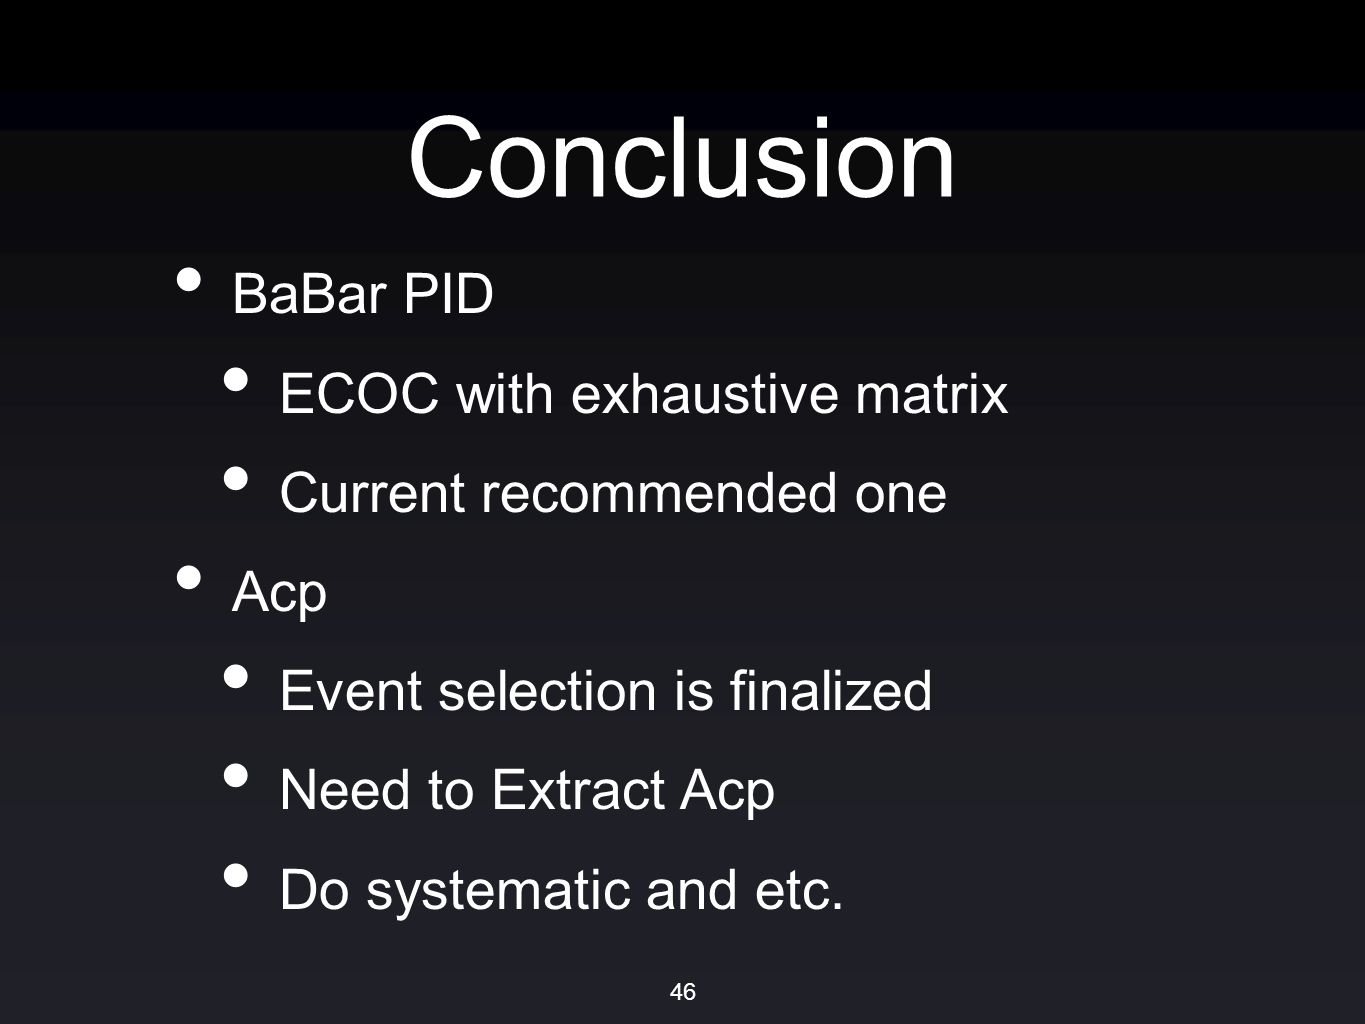 Conclusion BaBar PID ECOC with exhaustive matrix Current recommended one Acp Event selection is finalized Need to Extract Acp Do systematic and etc.